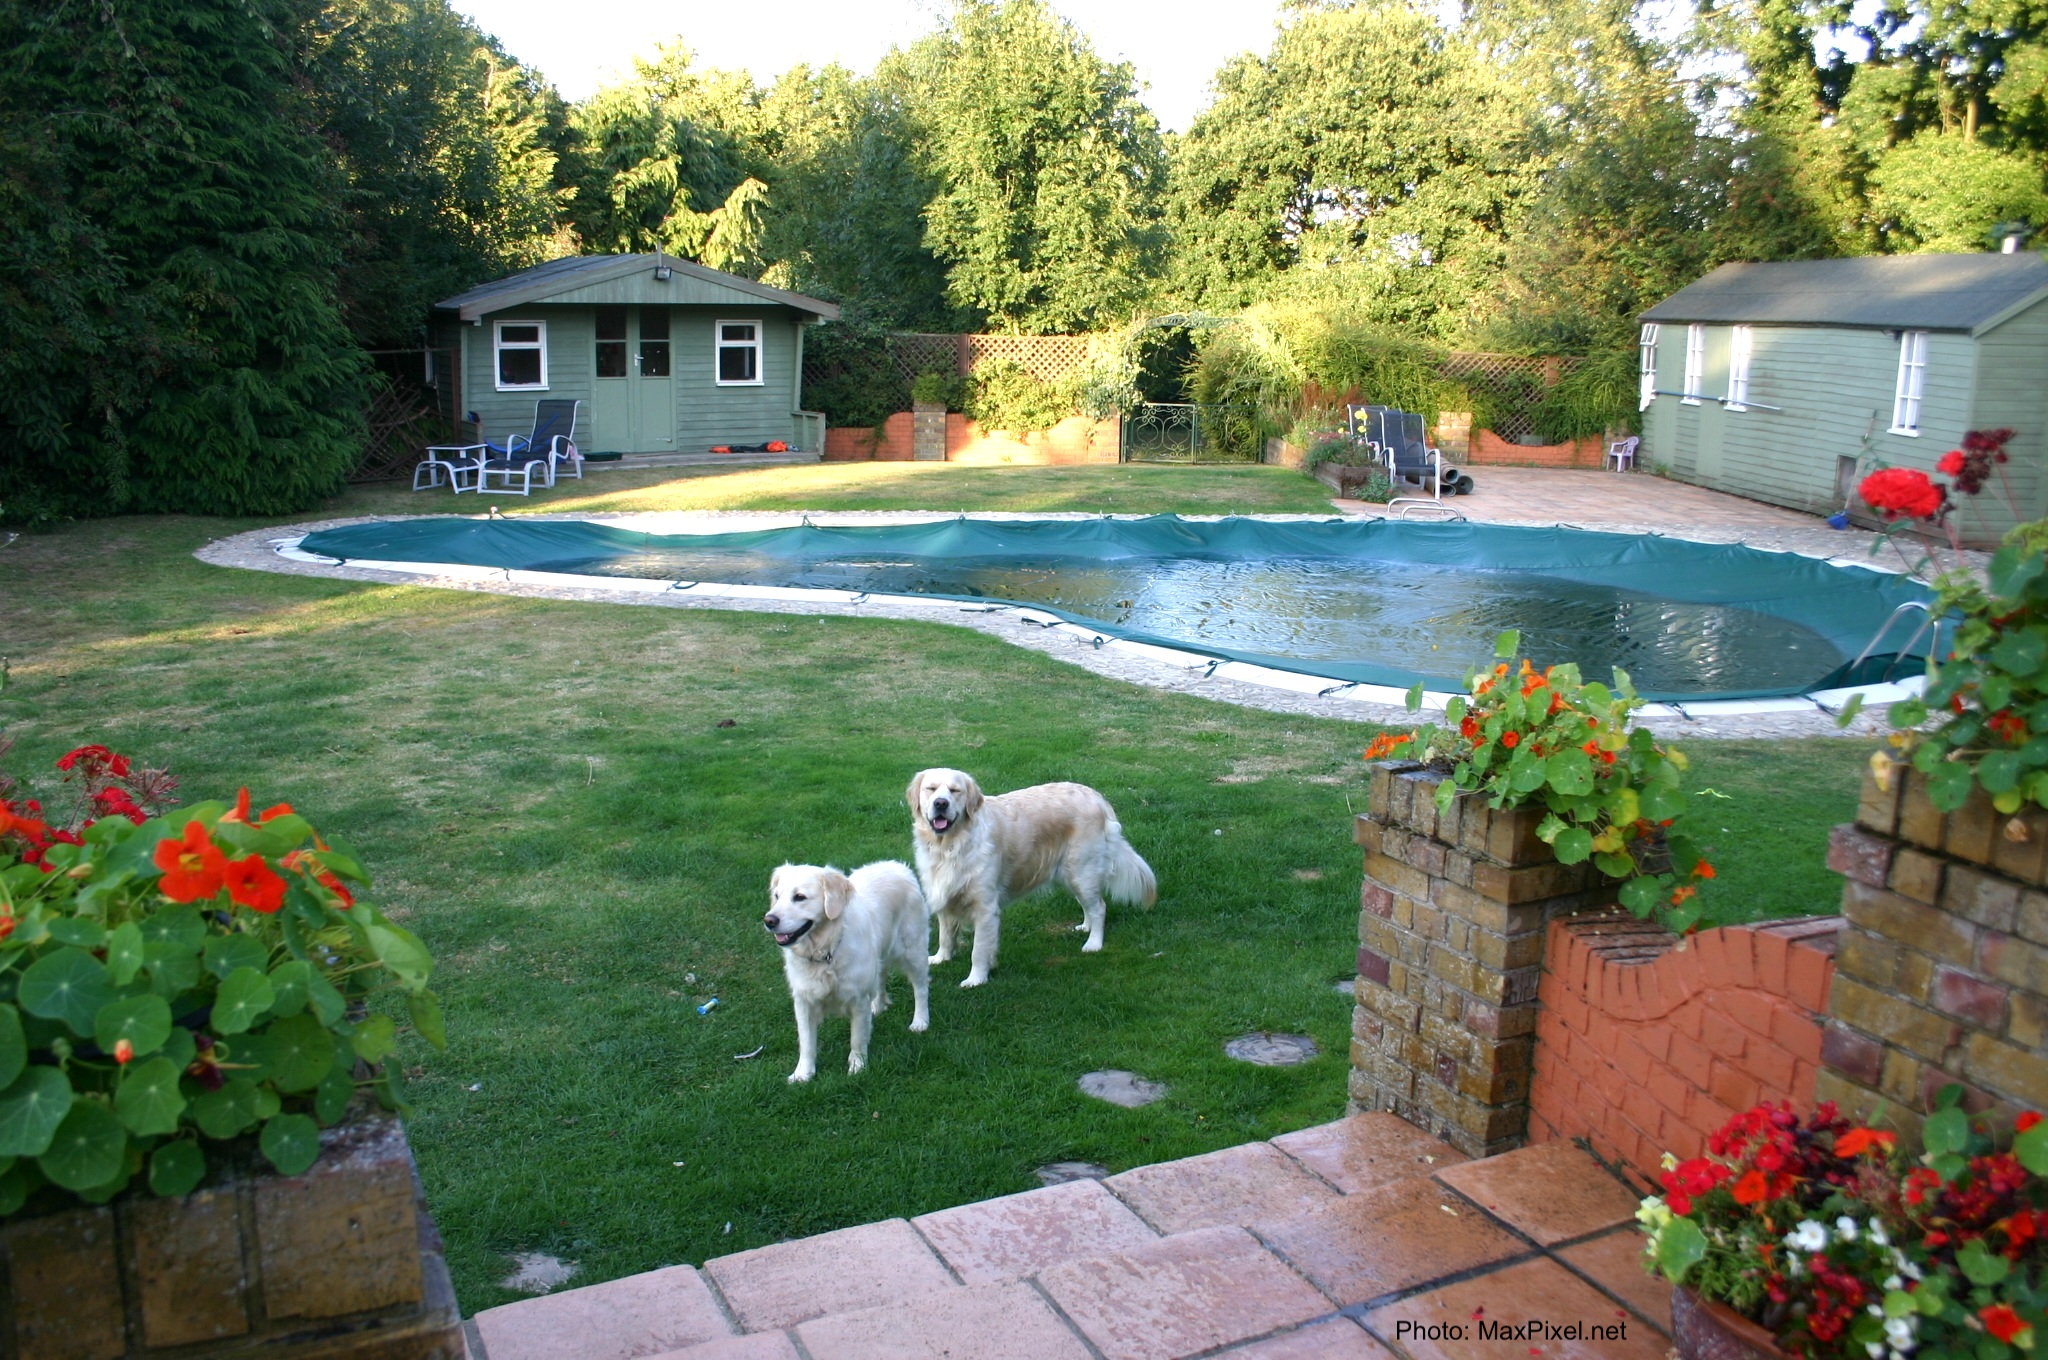 Backyard pool with 2 dogs looking on.